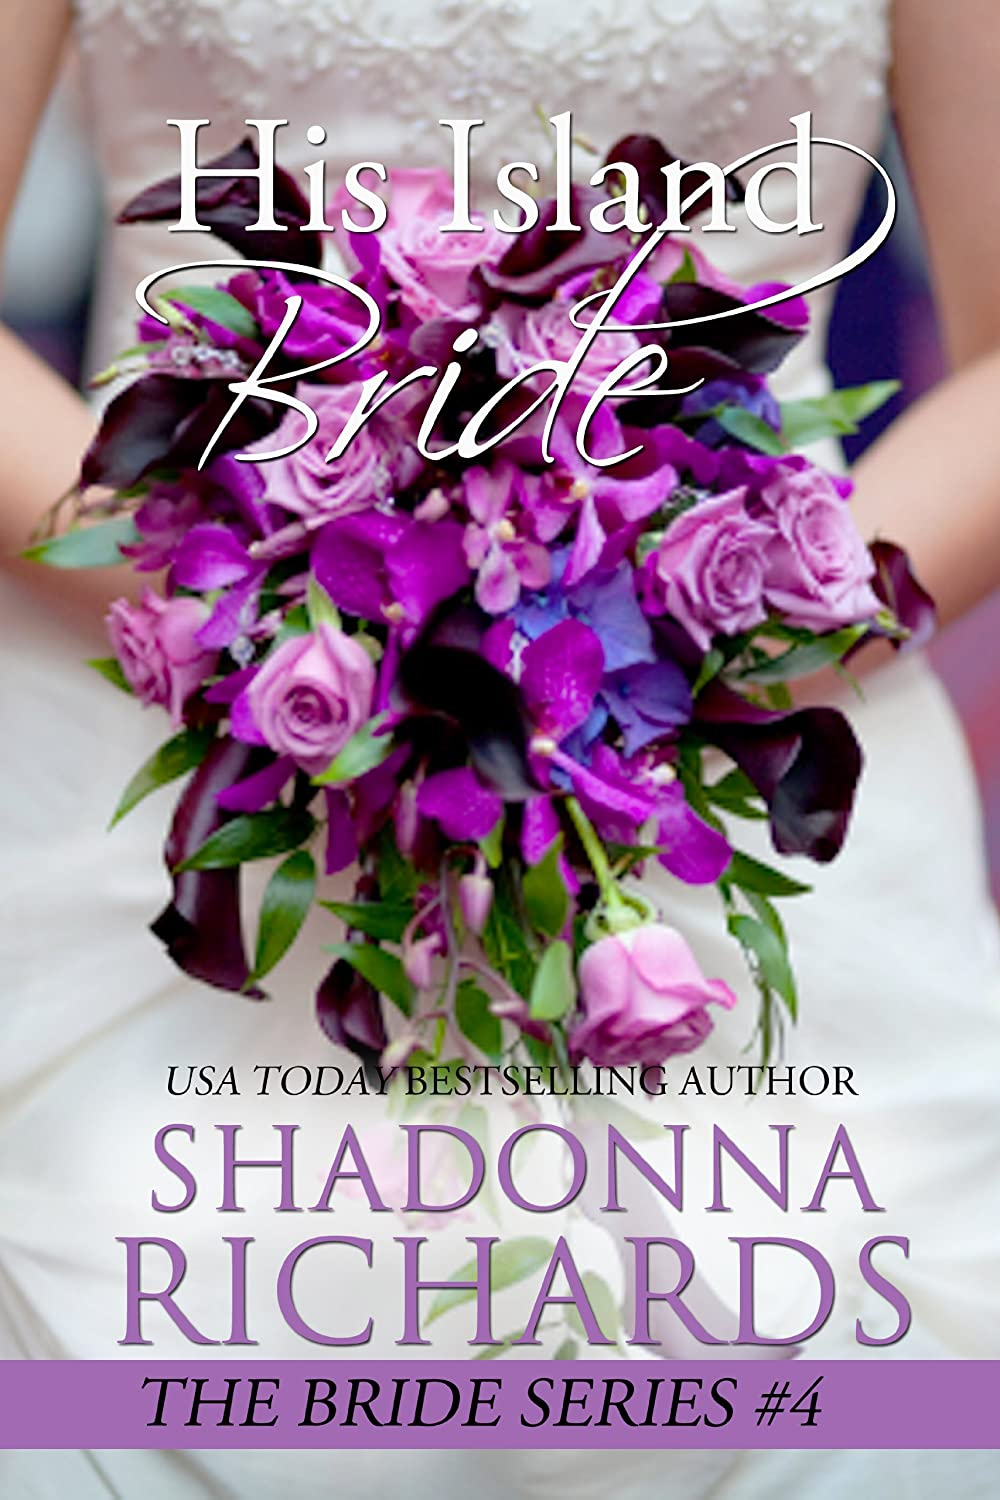 His Island Bride (The Bride Series Book 4) by Shadonna Richards